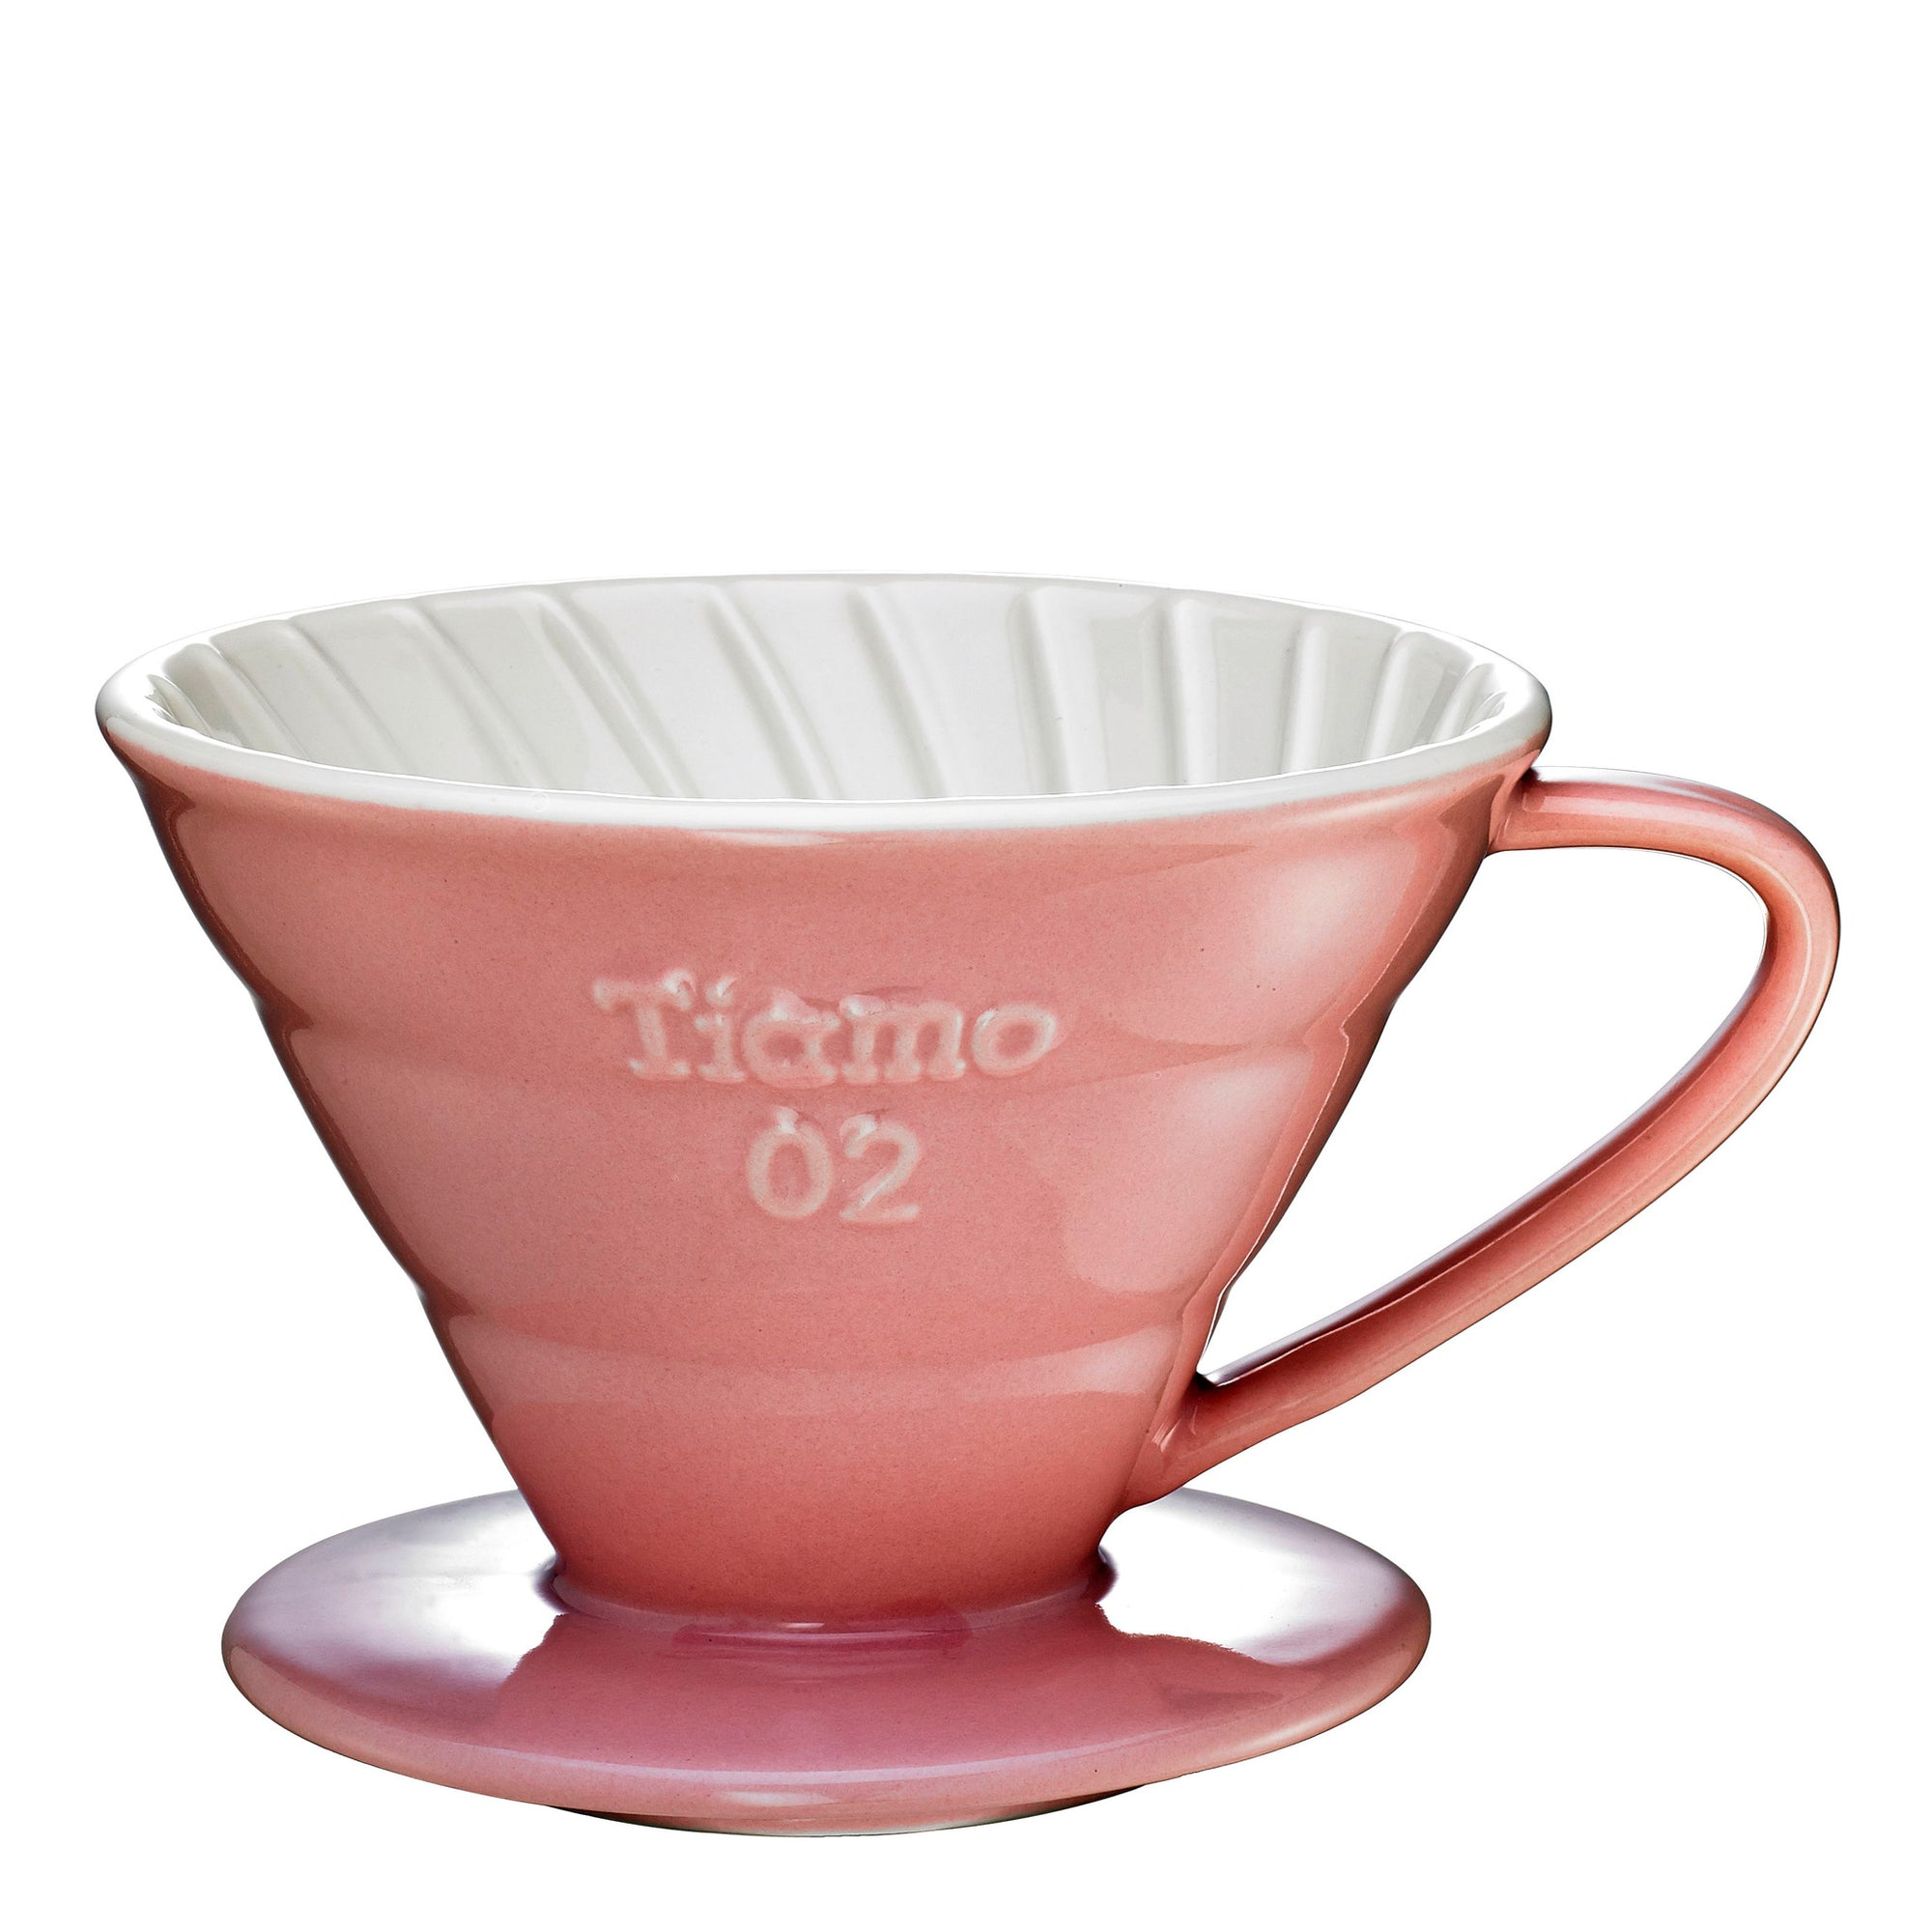 Filter V60 Ceramic - pink - Tiamo - Espresso Gear